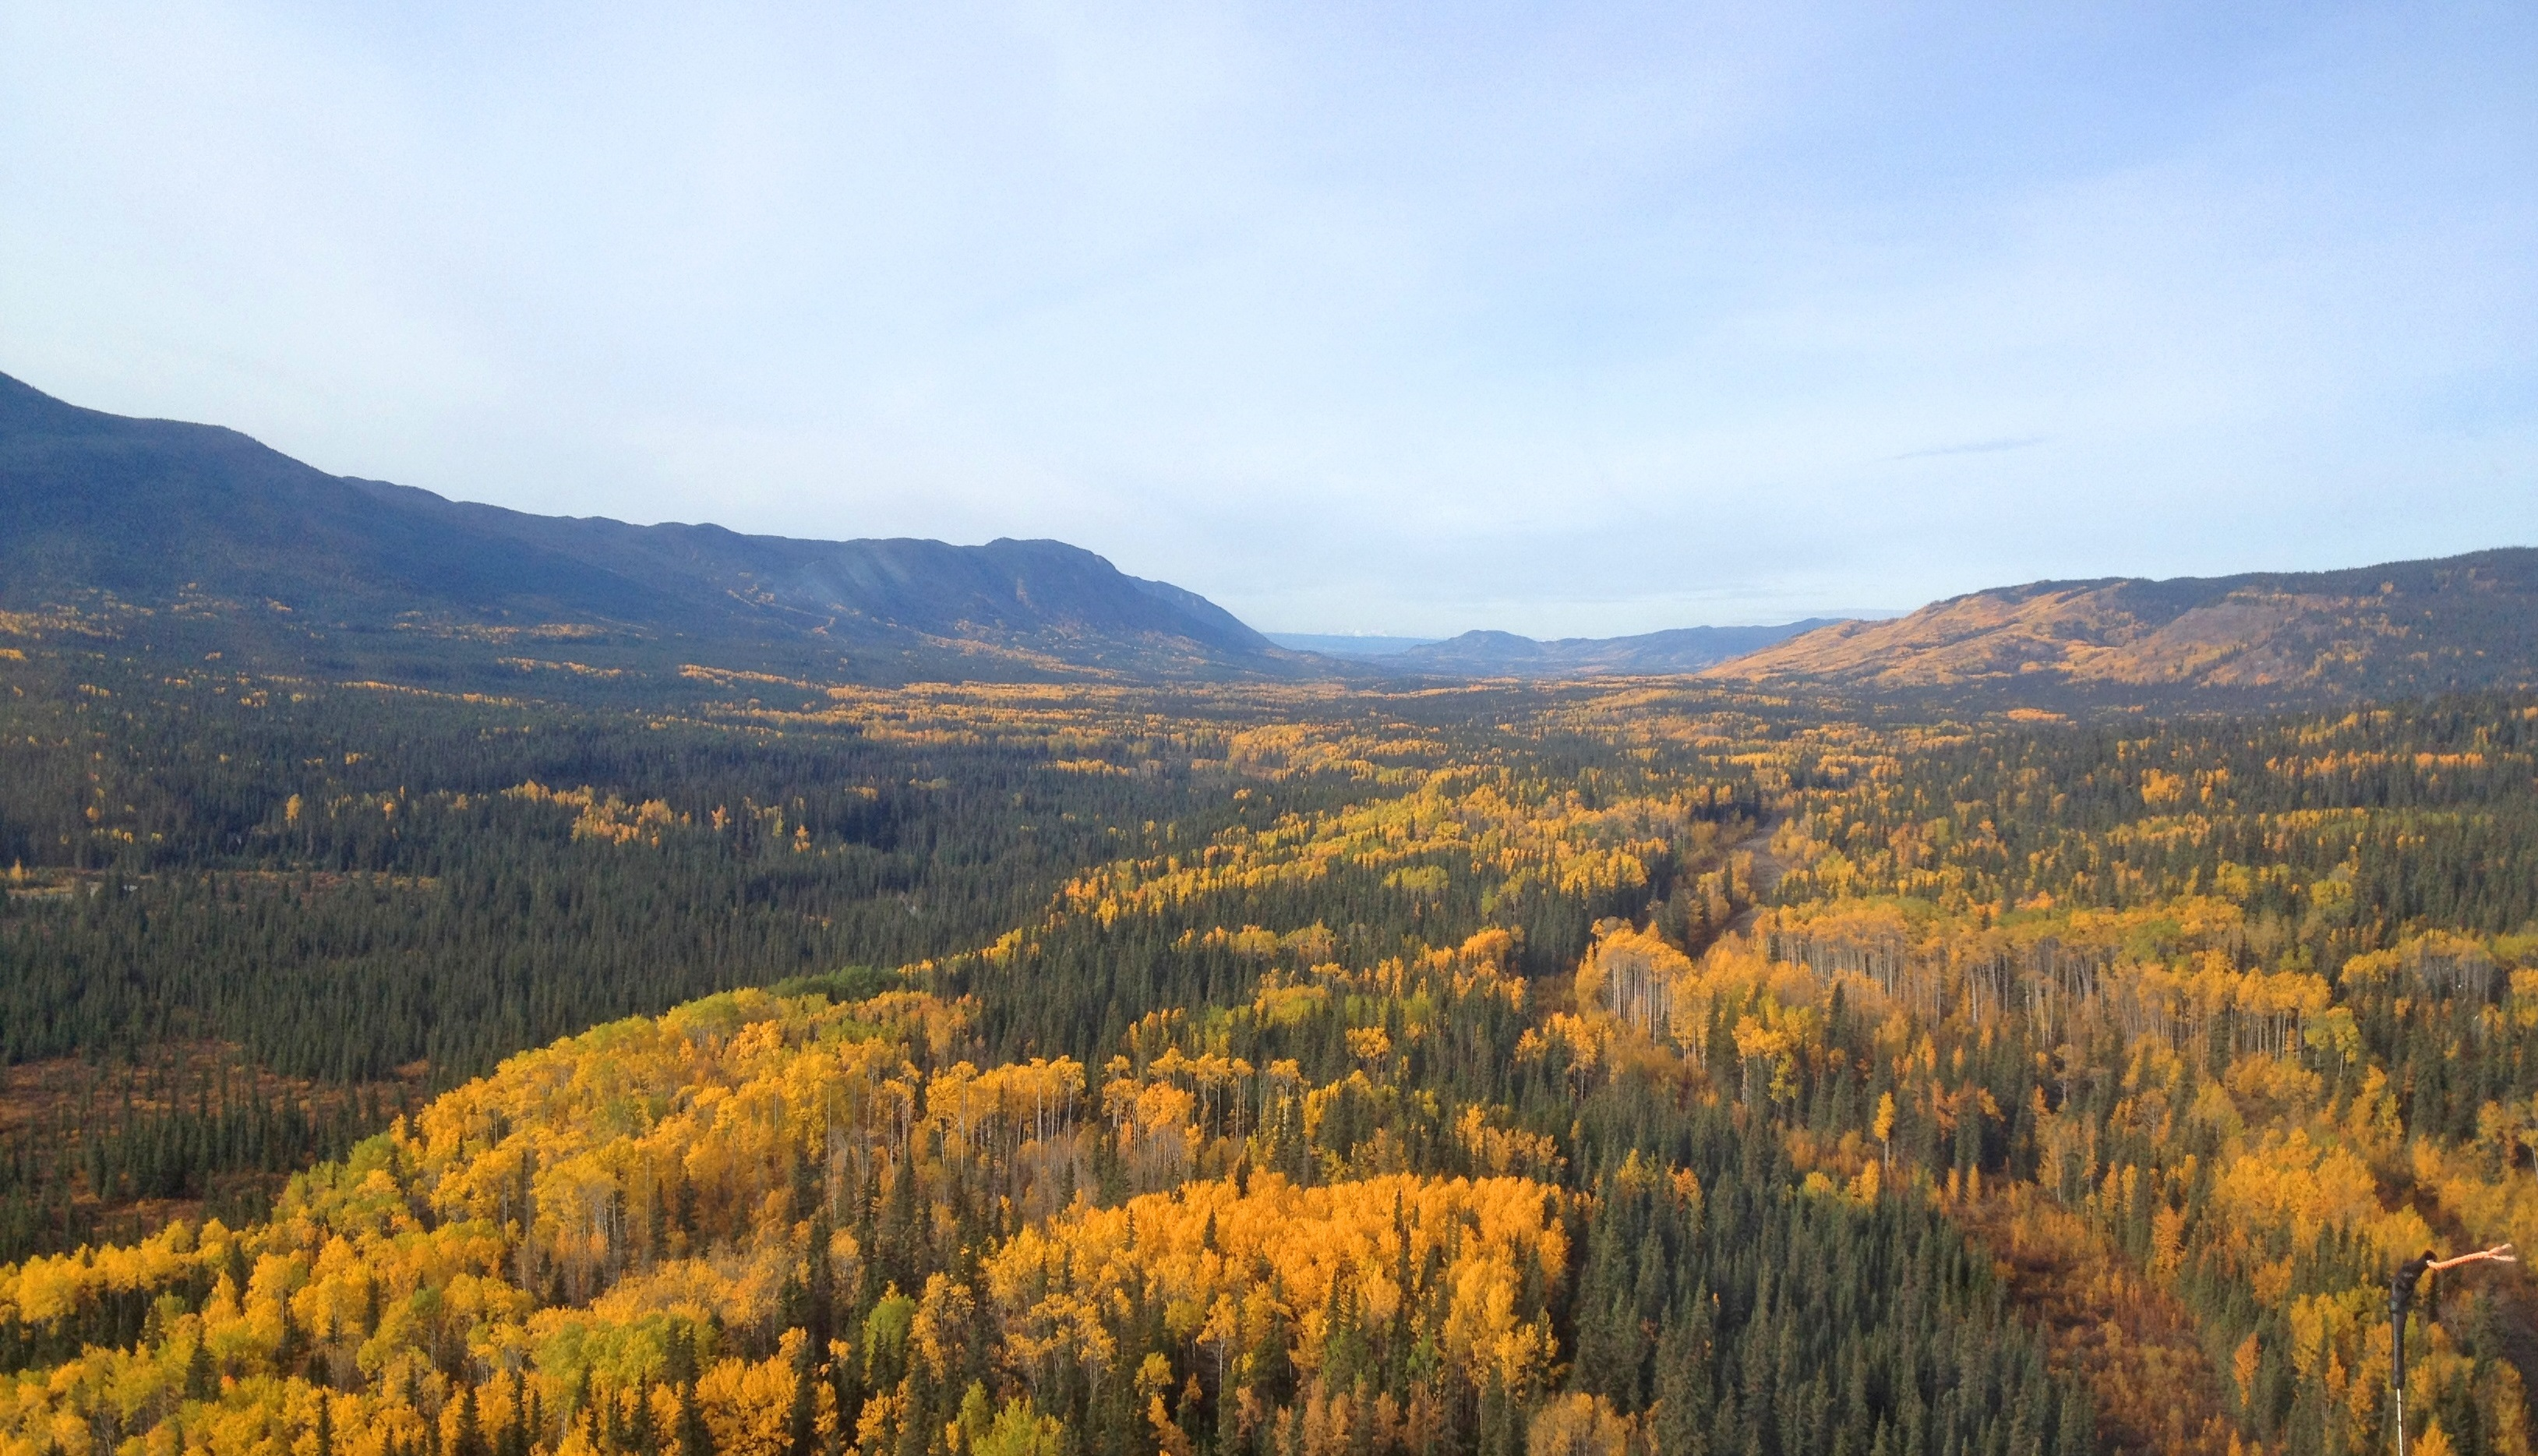 A Fall view of Yukon wilderness.